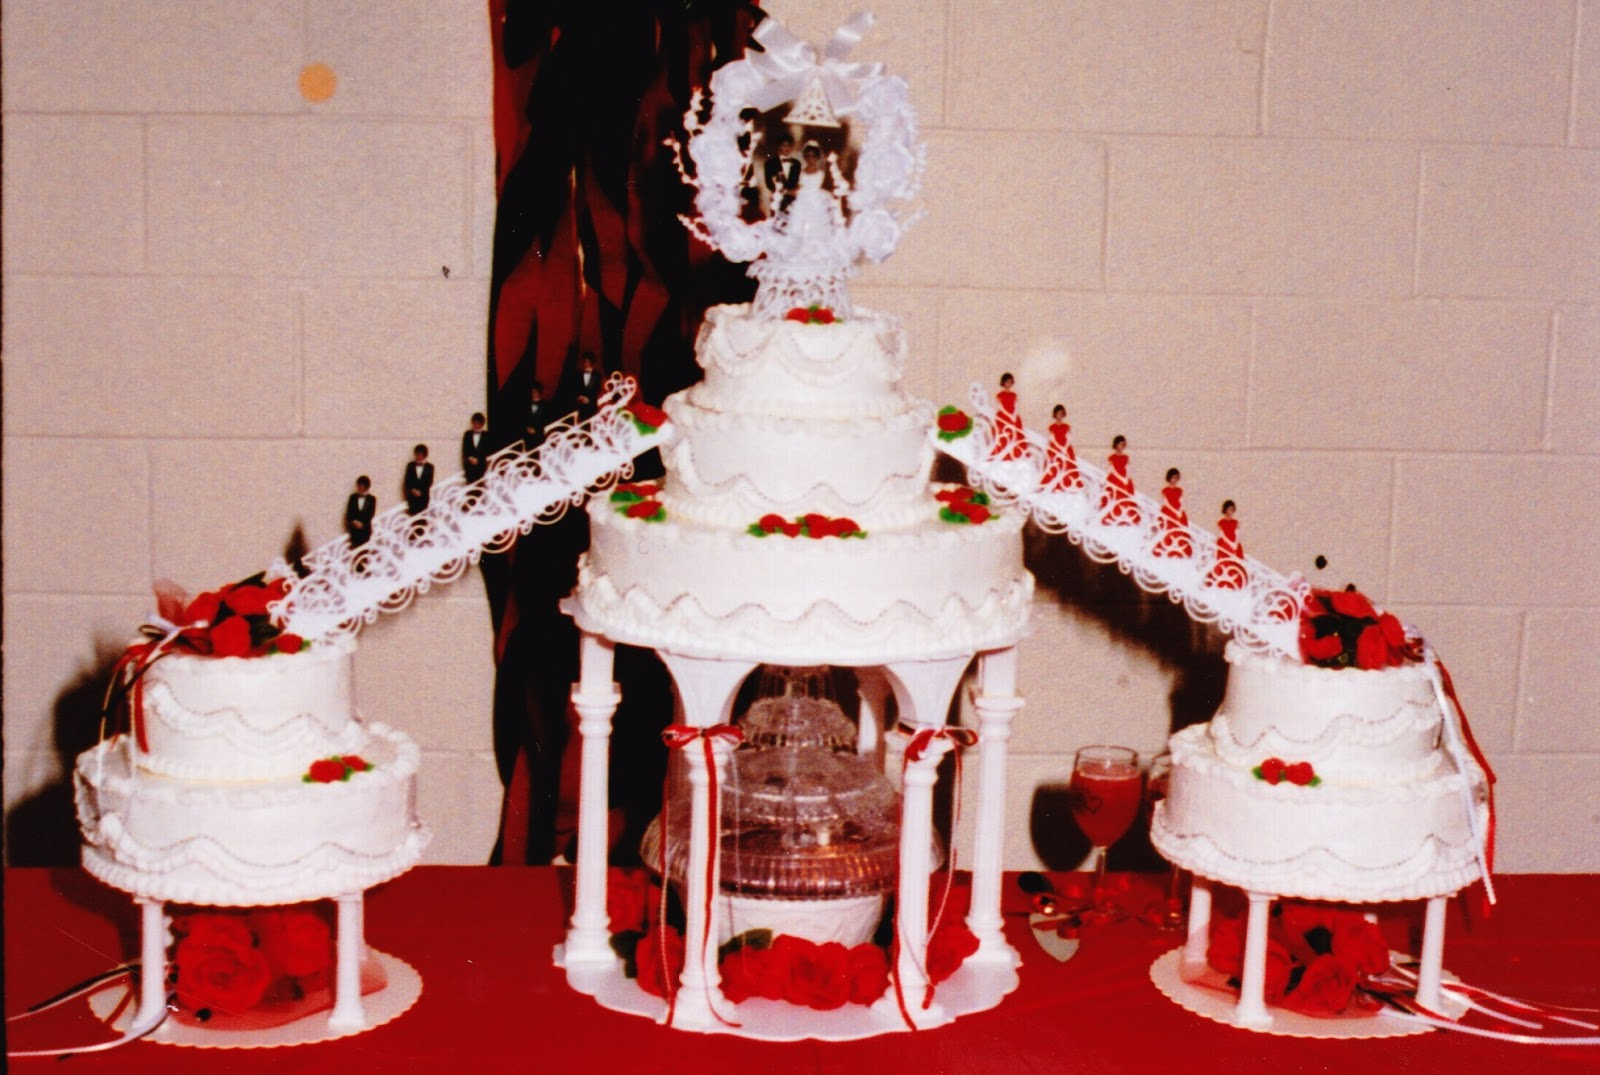 Cakes by Ruth: 1990